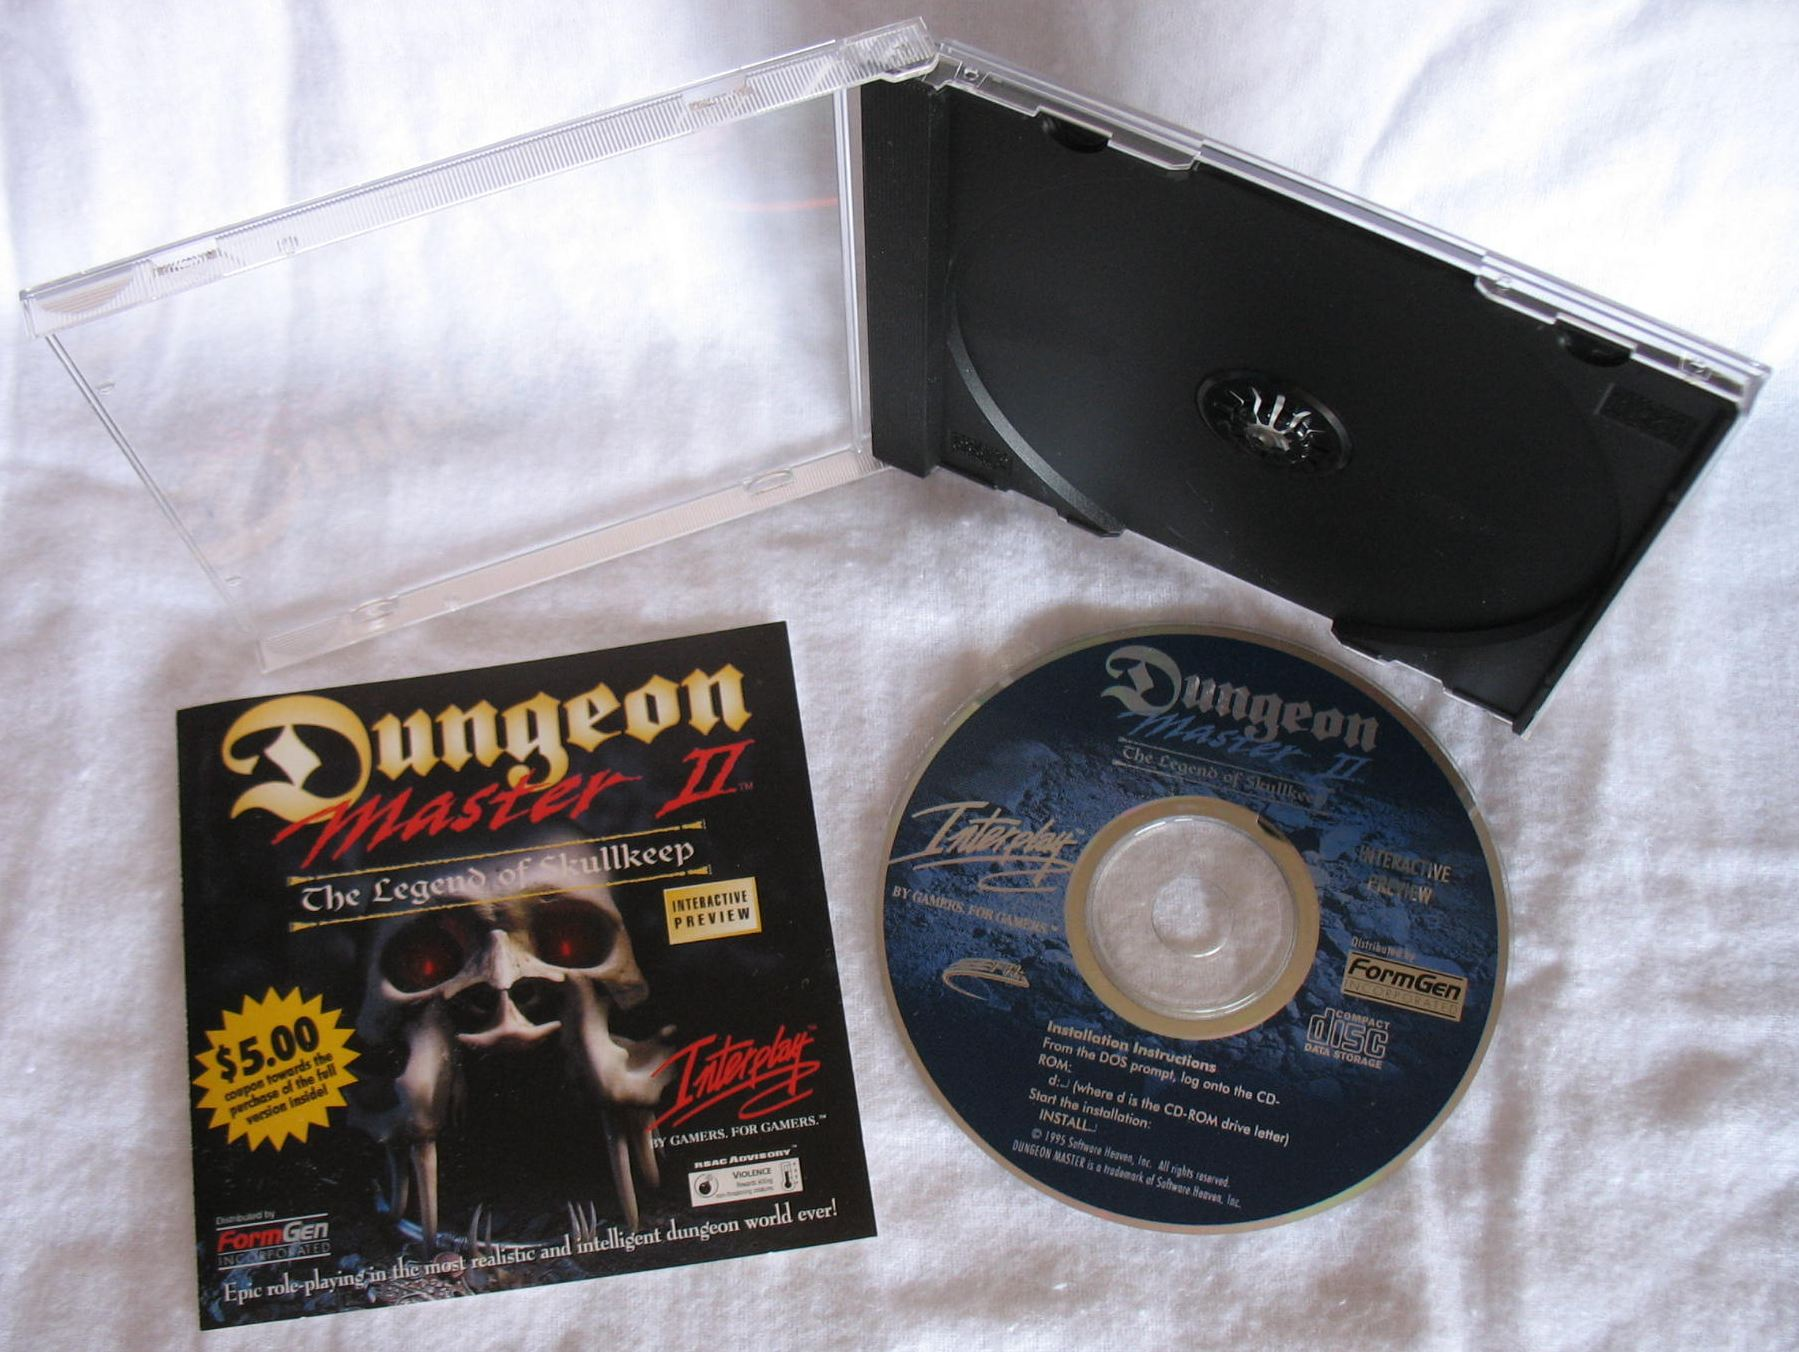 Demo - Dungeon Master II - US - PC - All - Overview - Photo